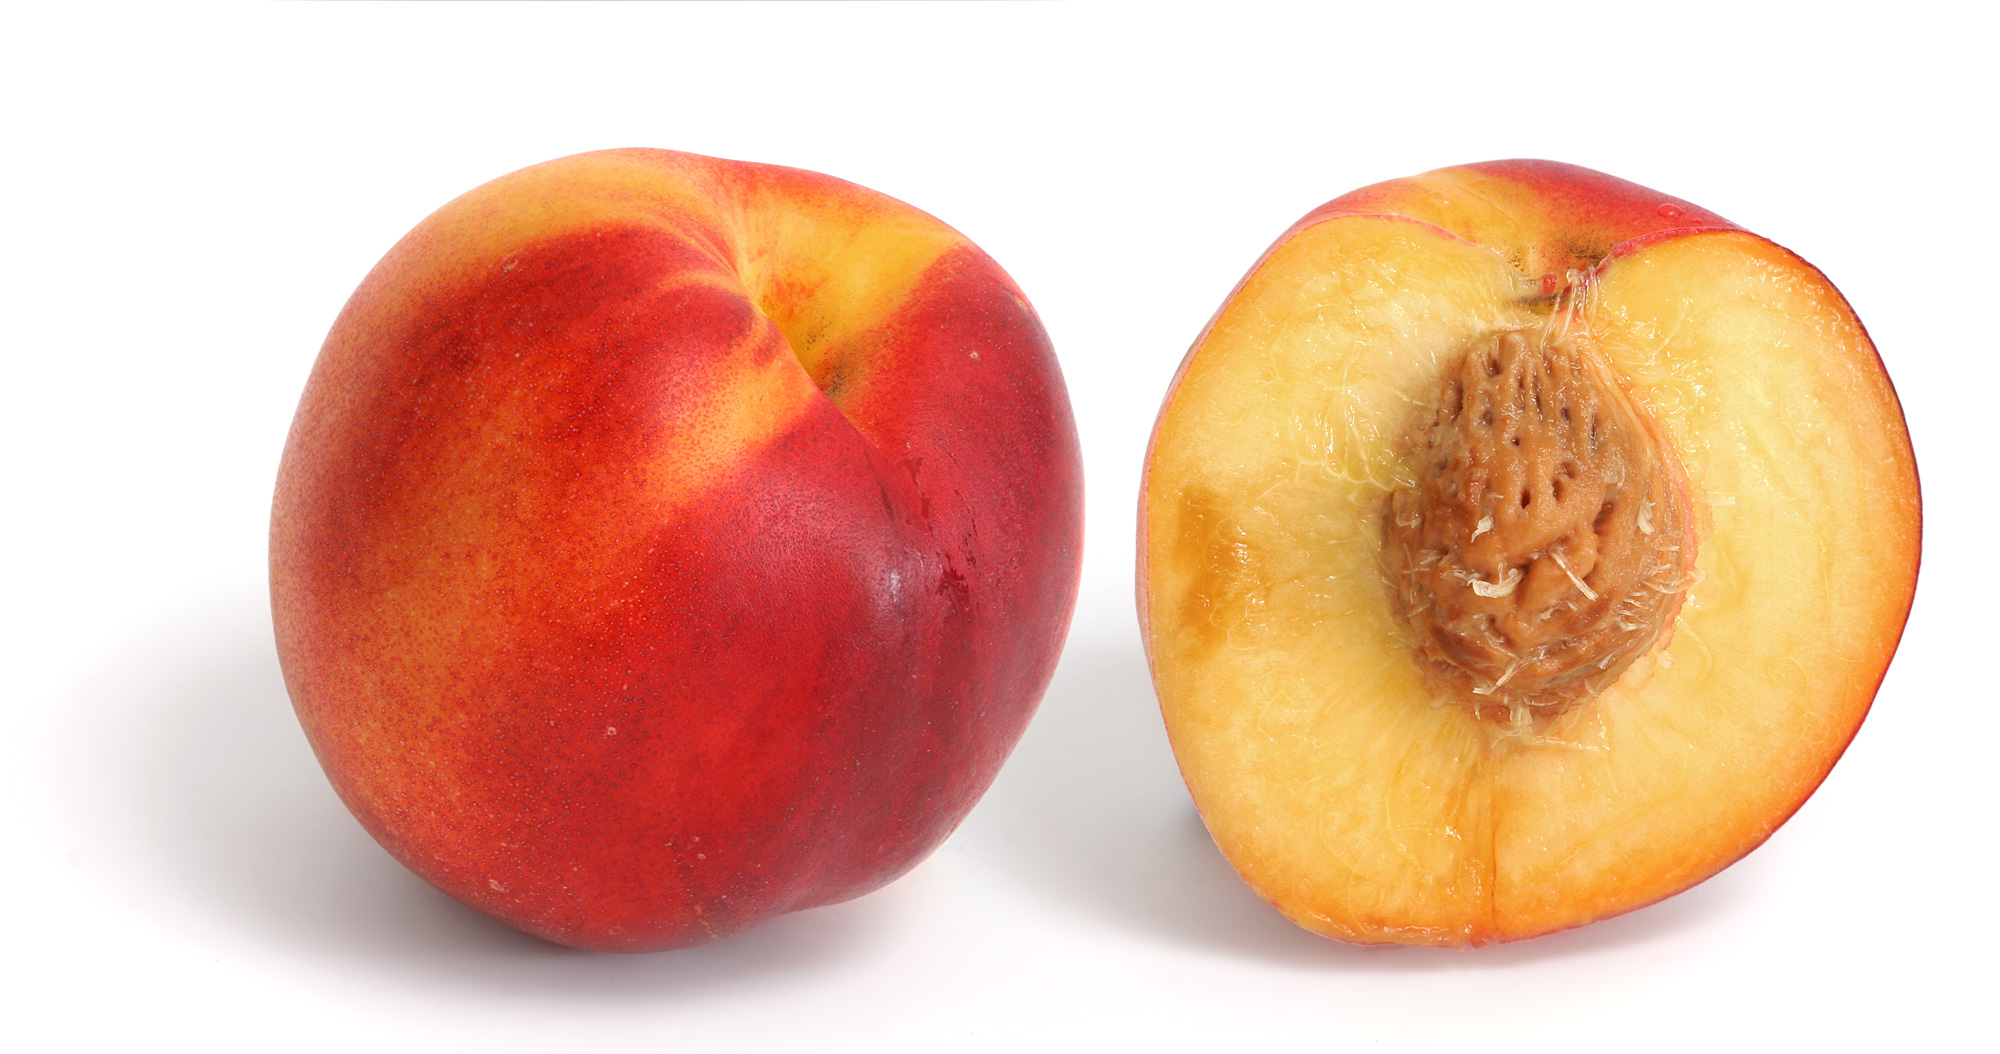 Yellow nectarine and cross section